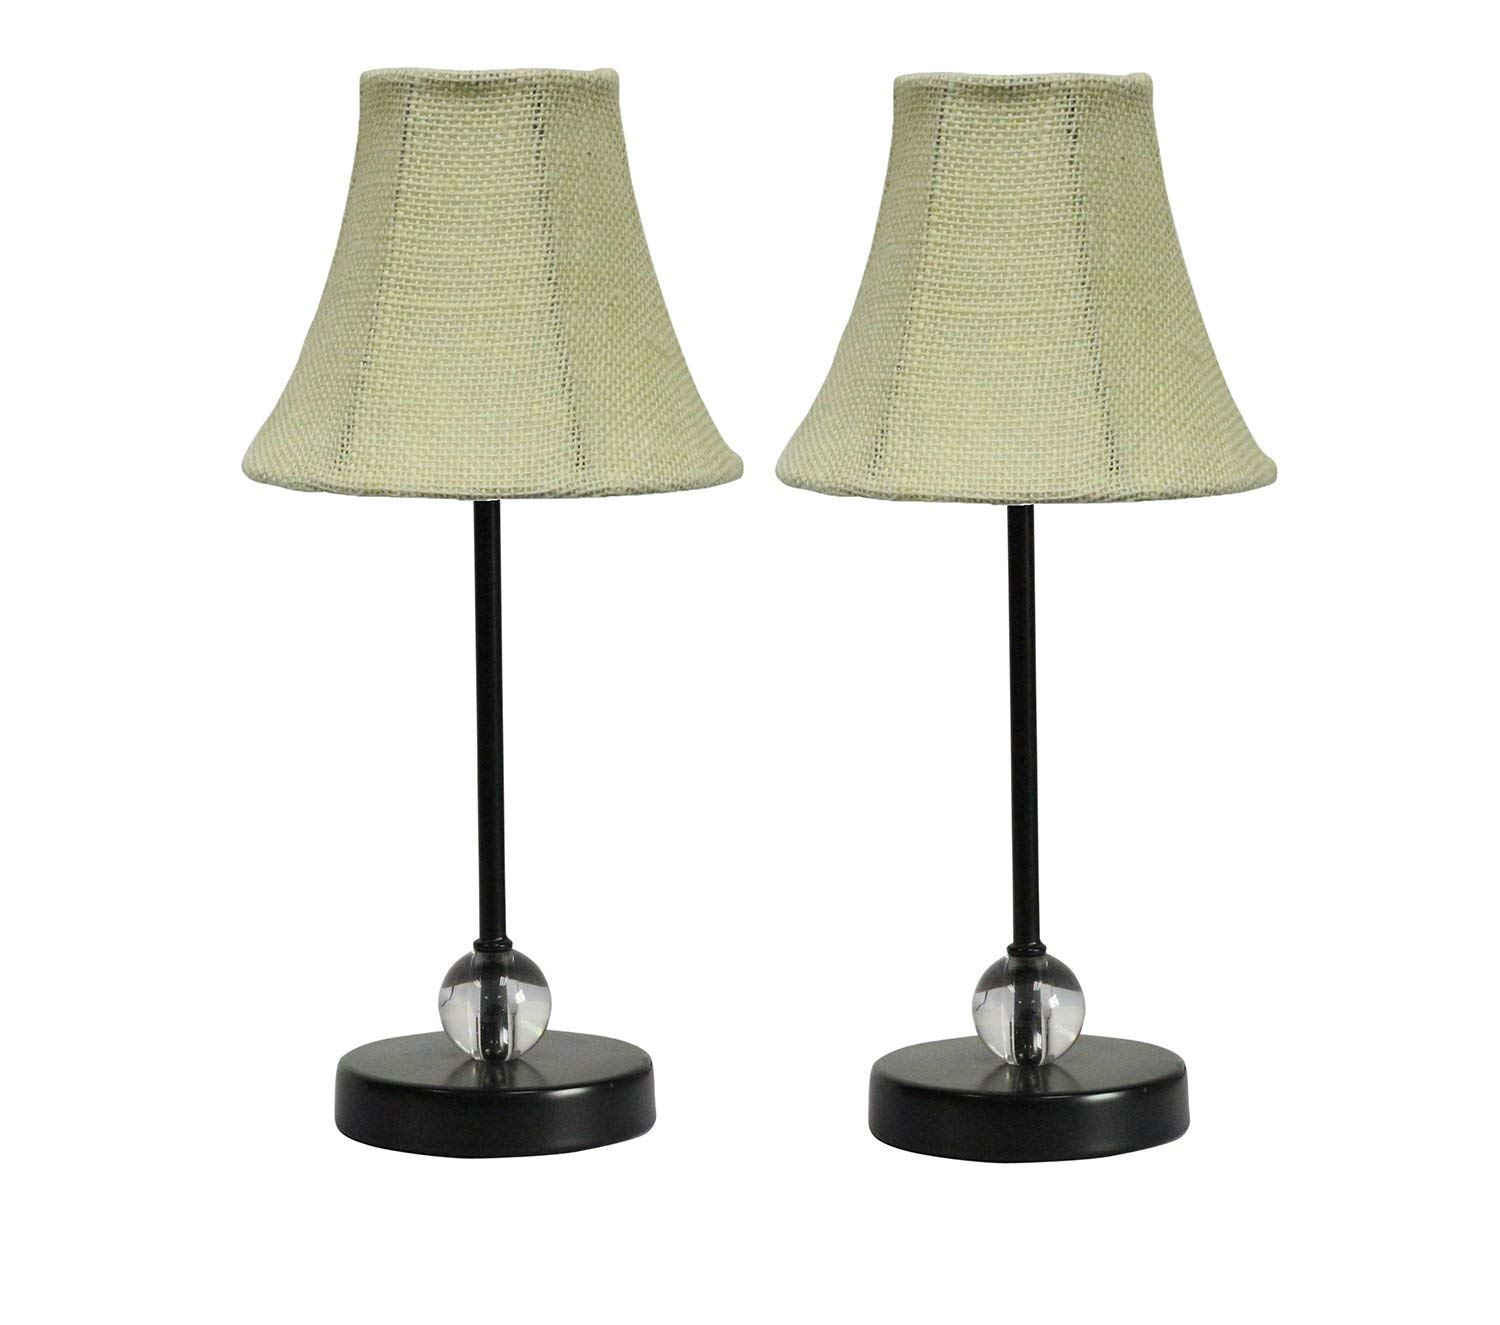 Chelsea Mini Accent Lamp with Ivory Burlap Bell Lamp Shade